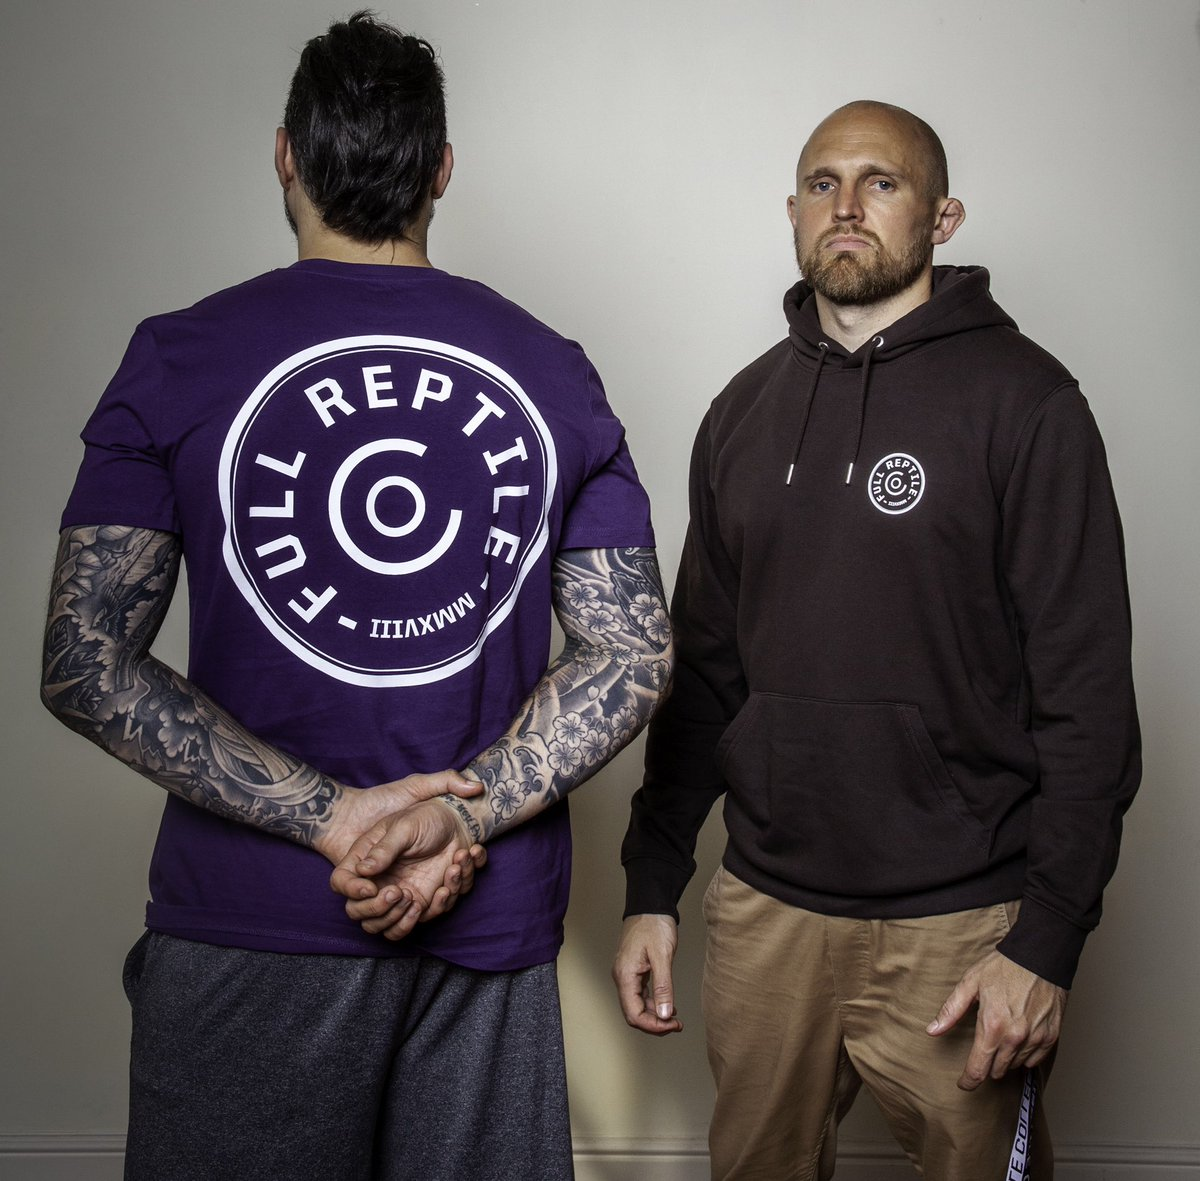 Co-Founders @danhardymma and @ollierichardson in the Bullet and Esoteric range of t's and hoods.  Join the crew now at https://t.co/7WGFZC96wQ   #FullReptile #Esoteric #FightIsland #JoinTheCrew #RoughHouse https://t.co/q9cf1xftQT